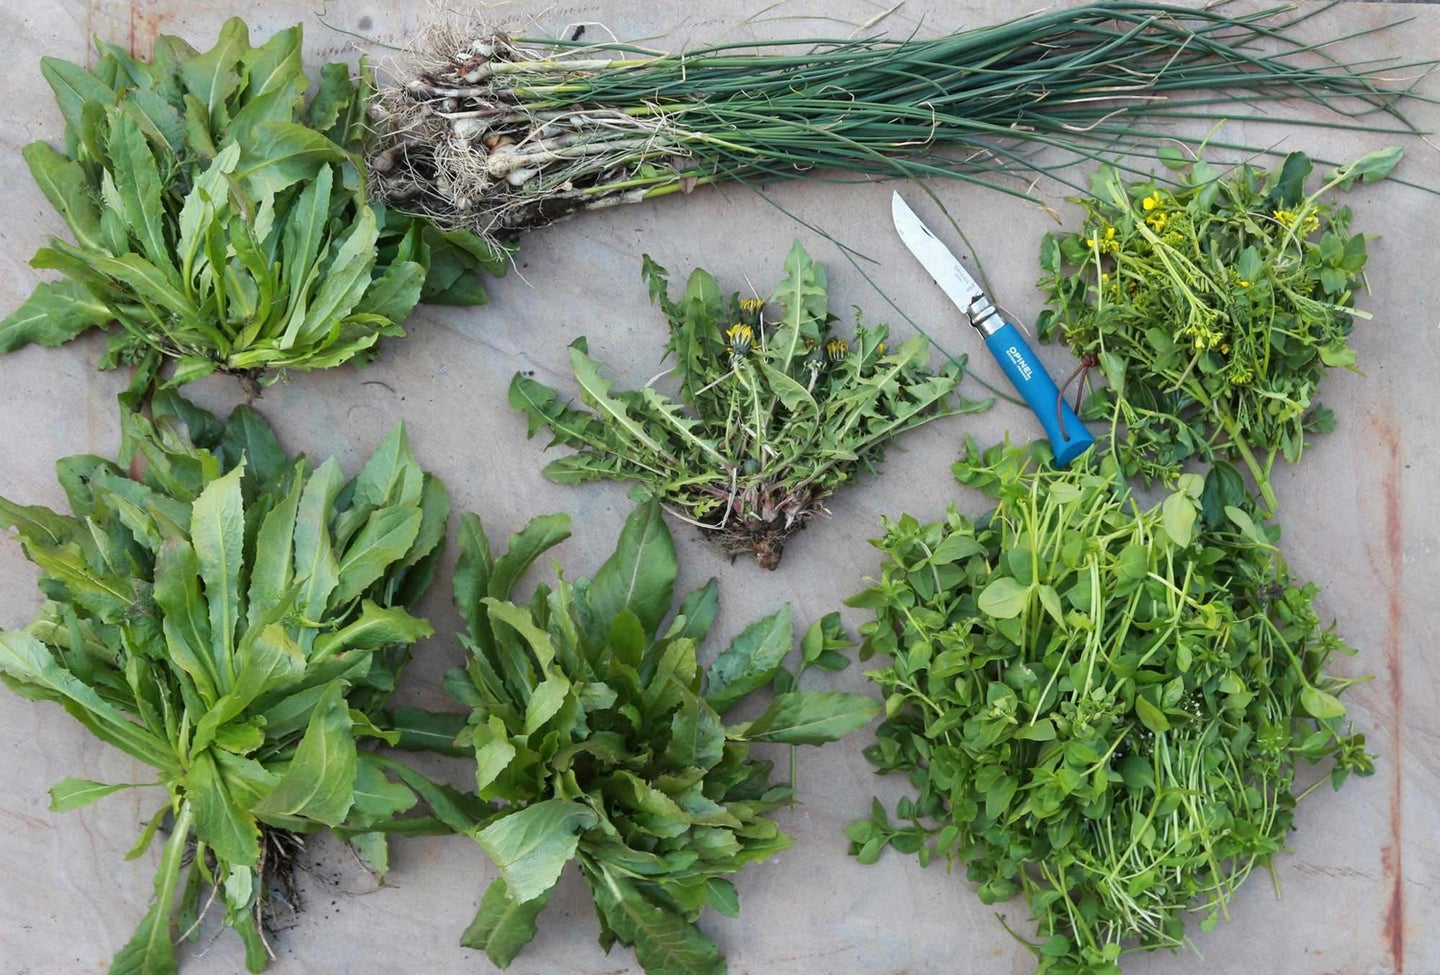 a selection of invasive, edible weeds on a gray surface, with a knife among them